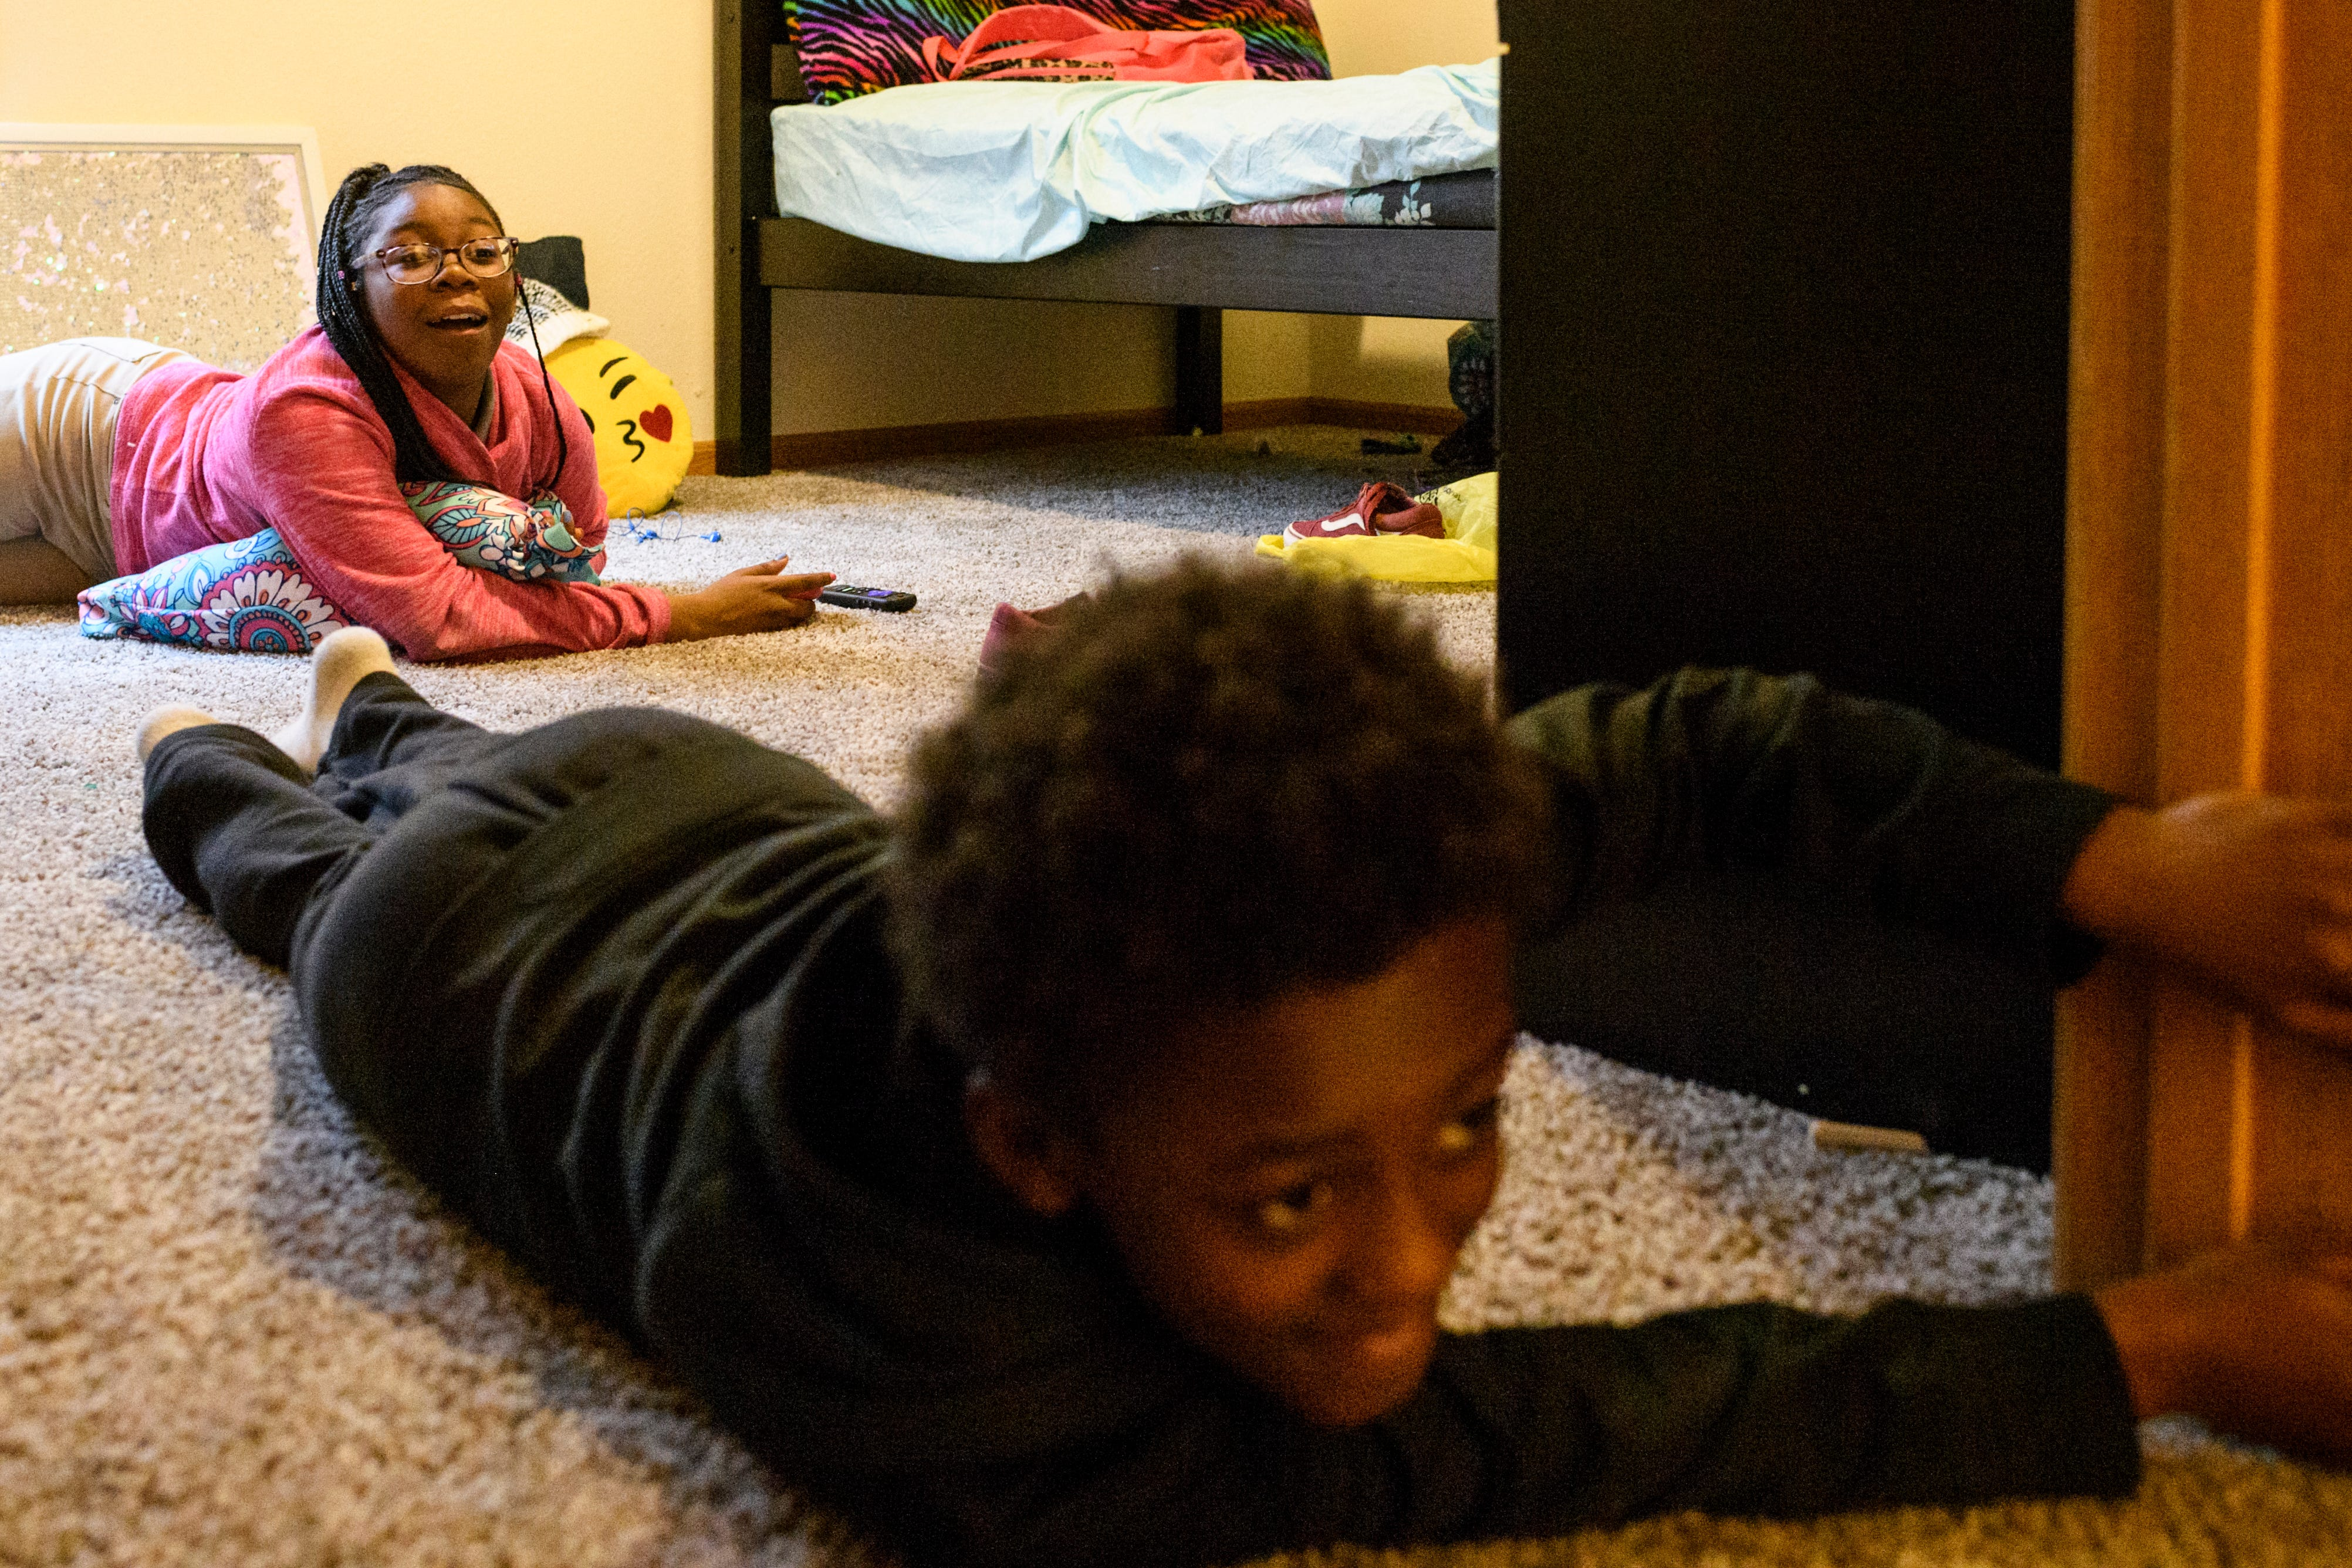 """""""Get out of my room,"""" Aliyah says as she reacts to her younger siblings Travon, front, and Teresa, not pictured, continually popping in and out of her new room while burning off their energy during playtime, Thursday evening, March 21, 2019. For the first several weeks there was an ample amount of space to run around as the family waited for the delivery of big furniture items, such as a couch and a dining room table."""